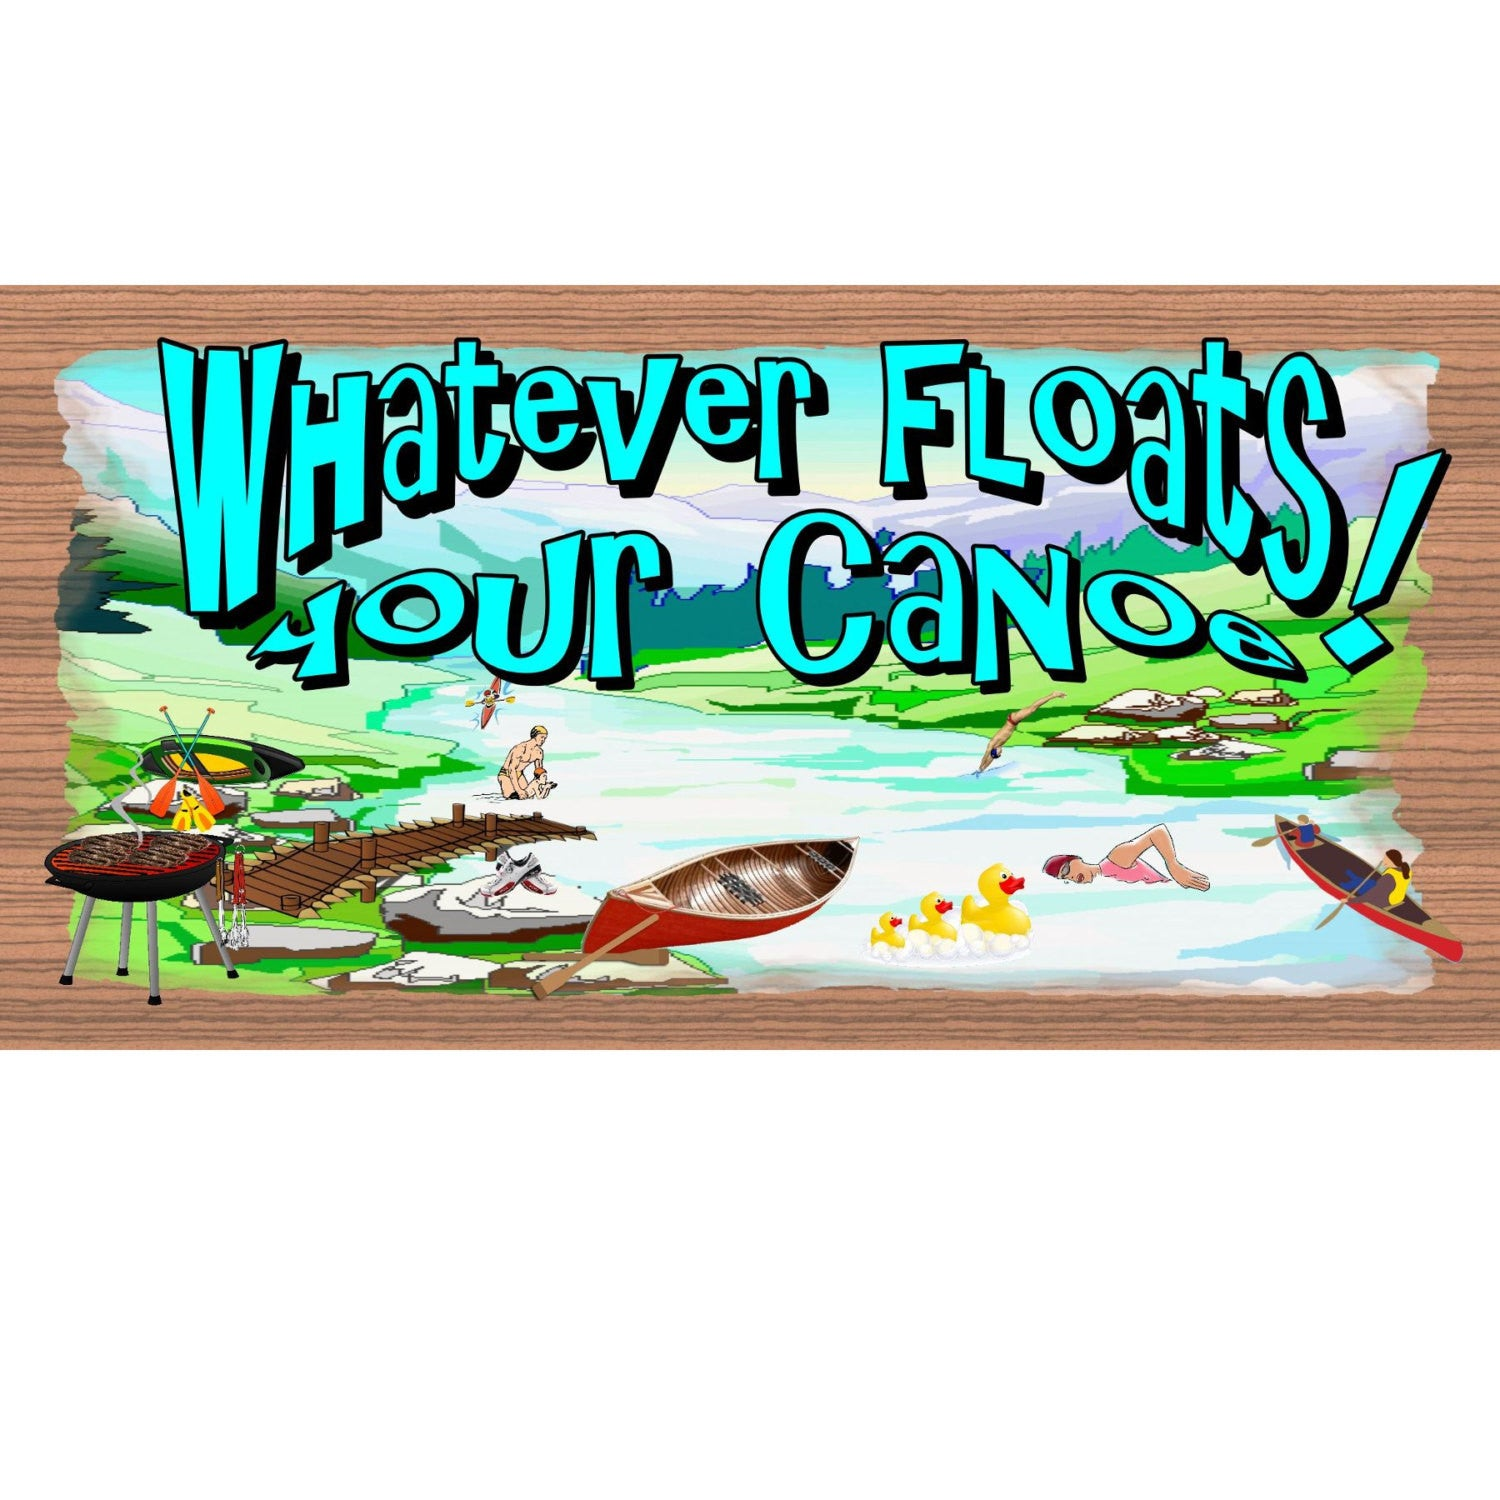 Canoe Wood Signs -Whatever Floats Your Canoe GS 793- Canoe plaque -Camping plaque